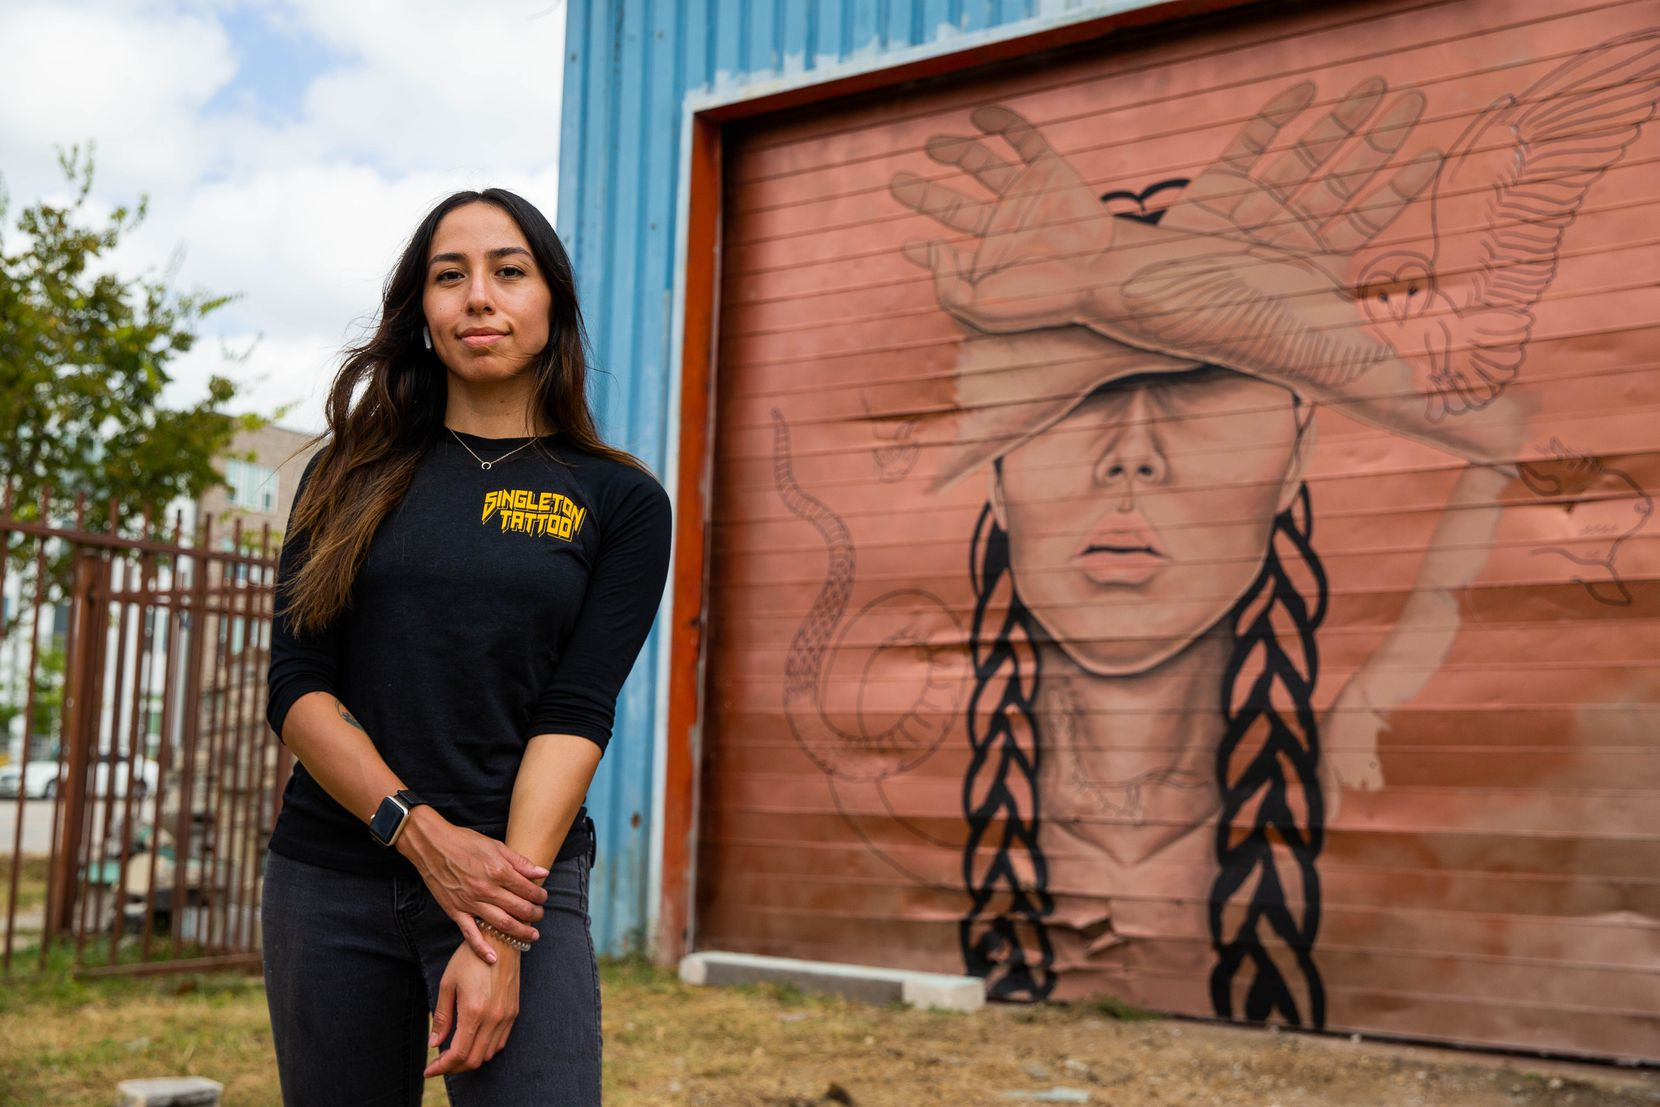 Artist Rose Rodriguez poses in front of the mural she's working on as part of The Wild West Mural Fest in Dallas on Thursday, Oct. 22, 2020. Rodriguez, a tattoo artist, was inspired by the Wichita people and their use of tattoos..